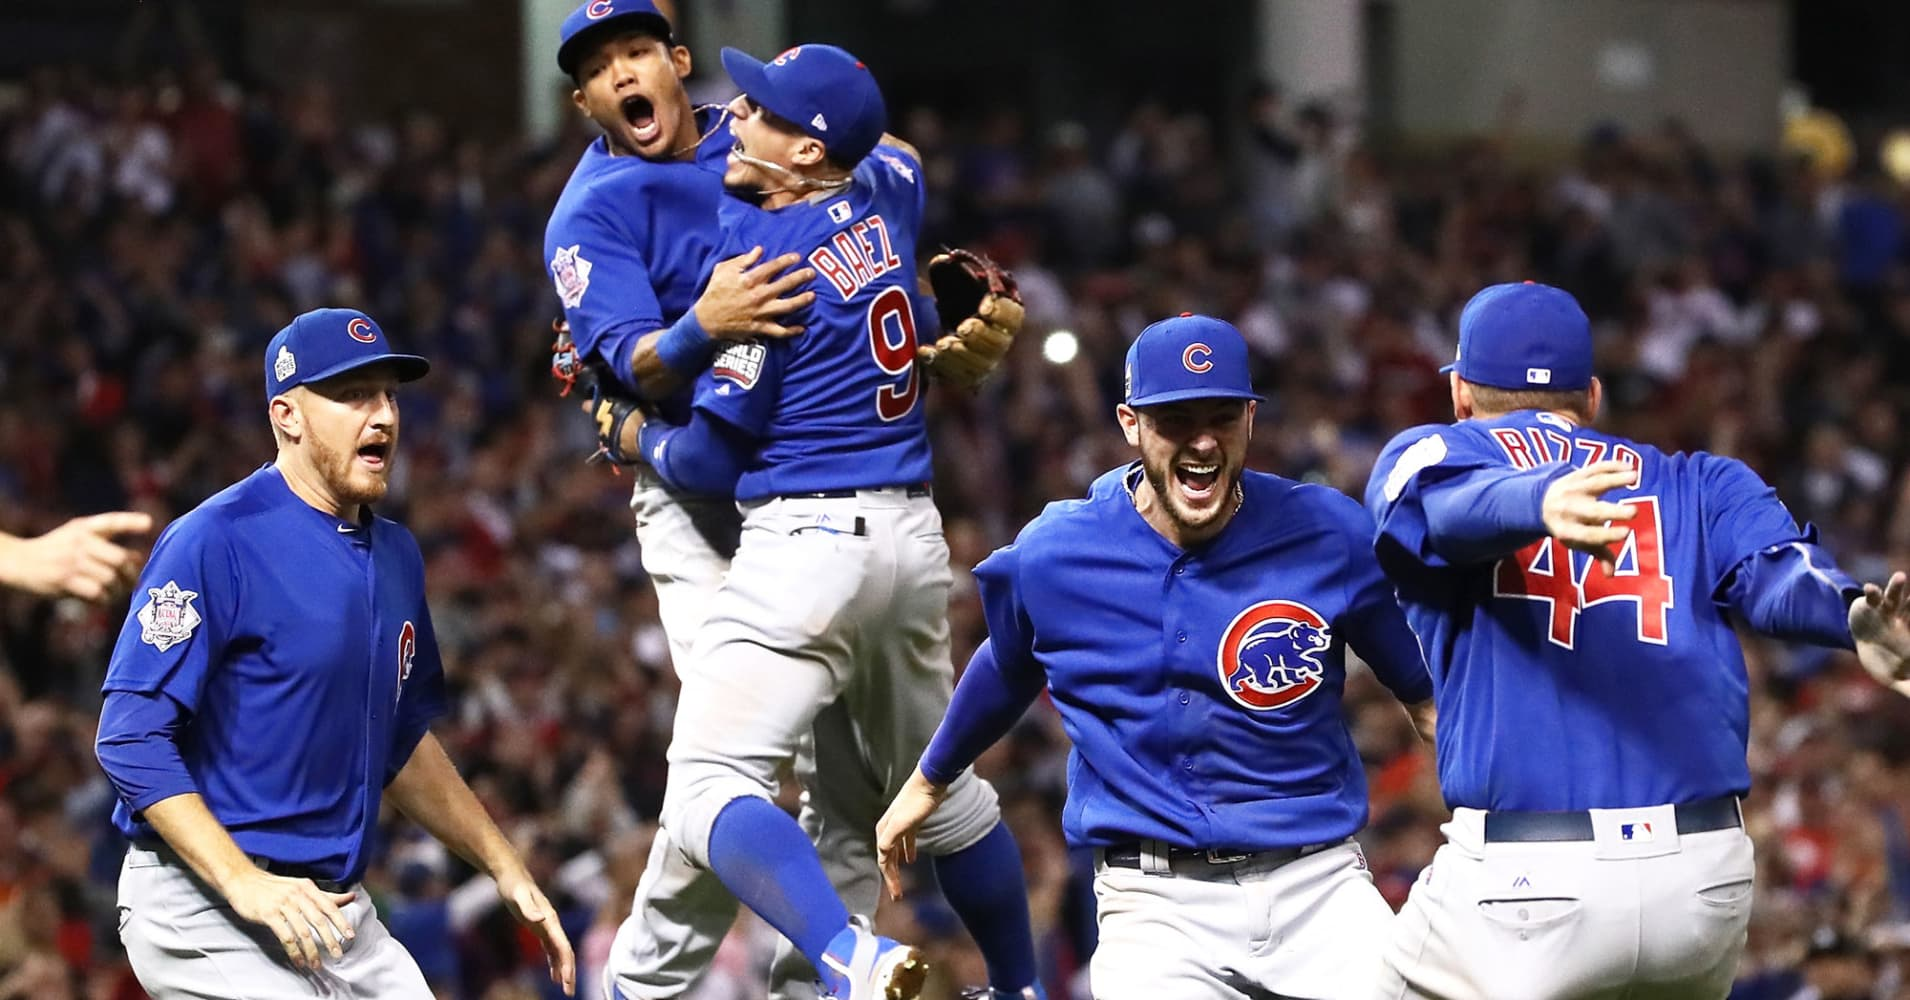 The Chicago Cubs celebrate after winning 8-7 in Game Seven of the 2016 World Series at Progressive Field on November 2, 2016, in Cleveland.